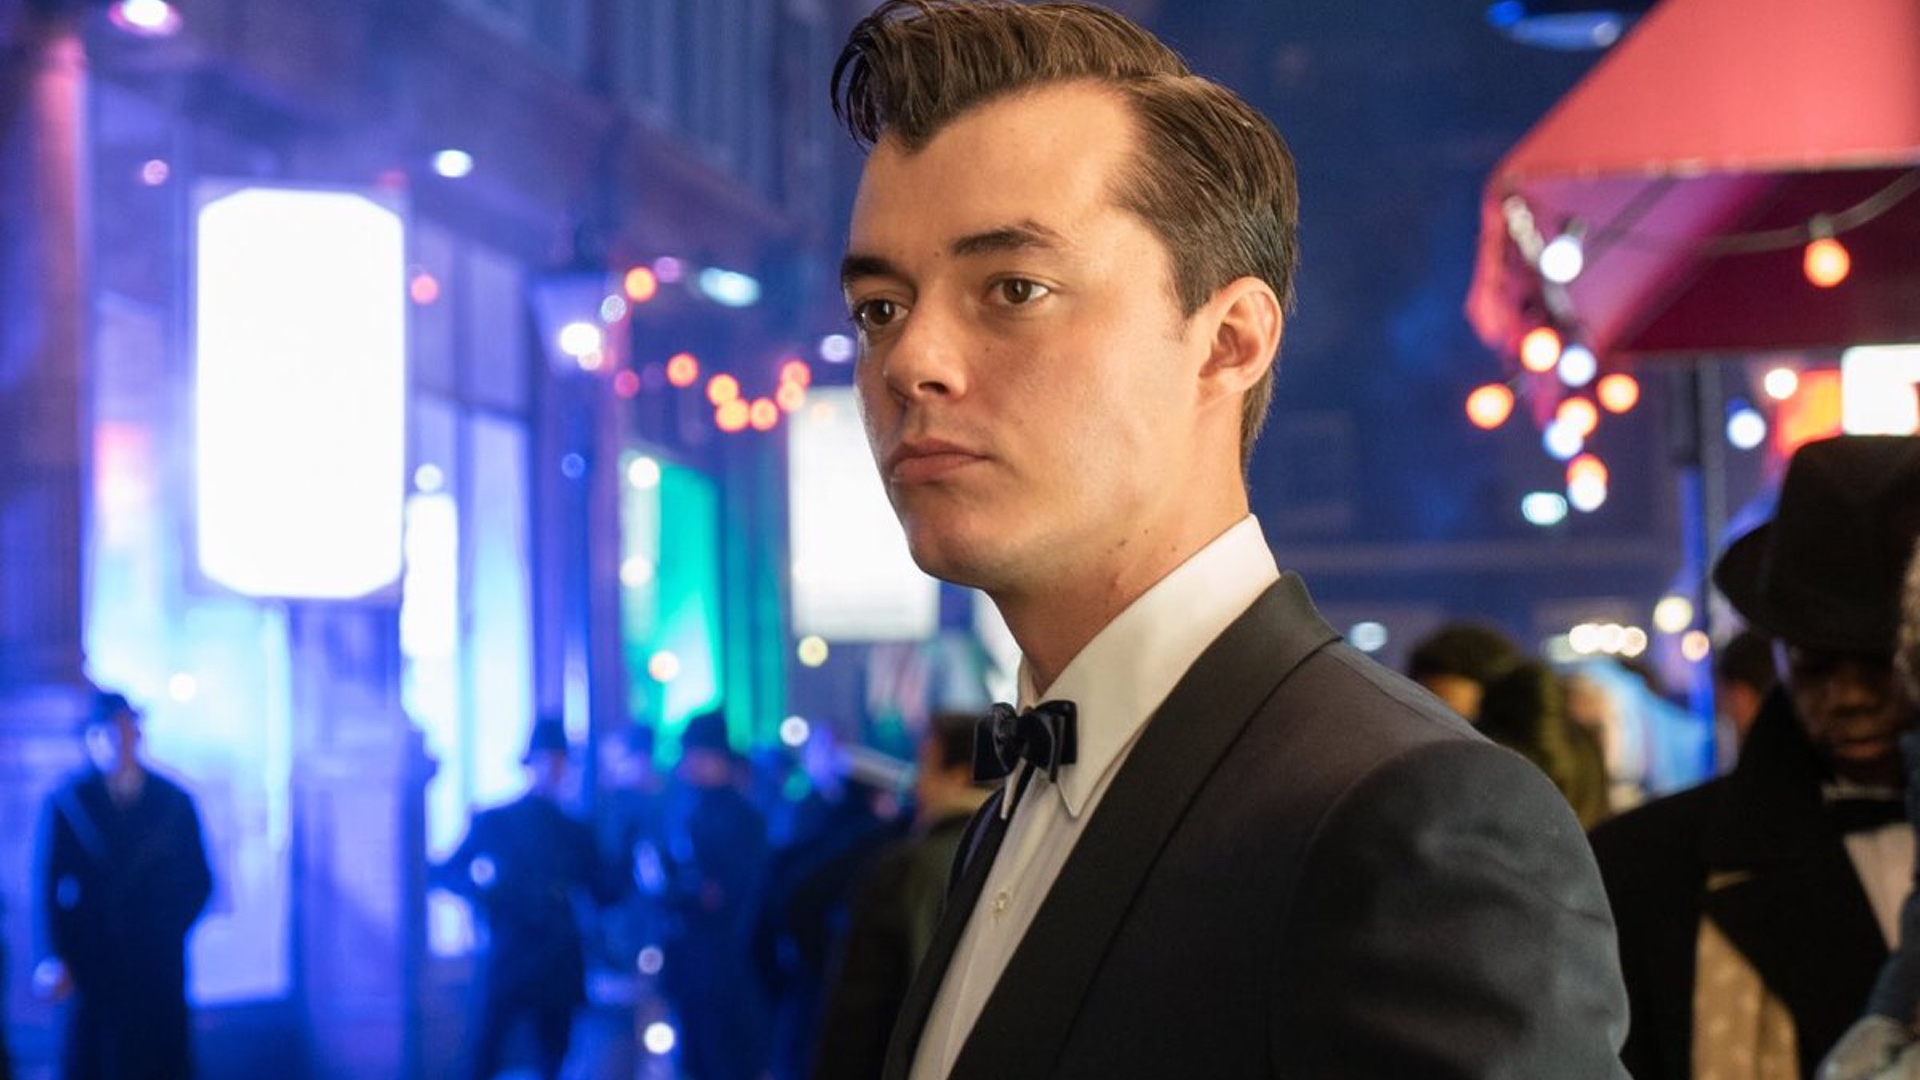 Batman Prequel Pennyworth release date is set for July 28th and will premiere on Epix